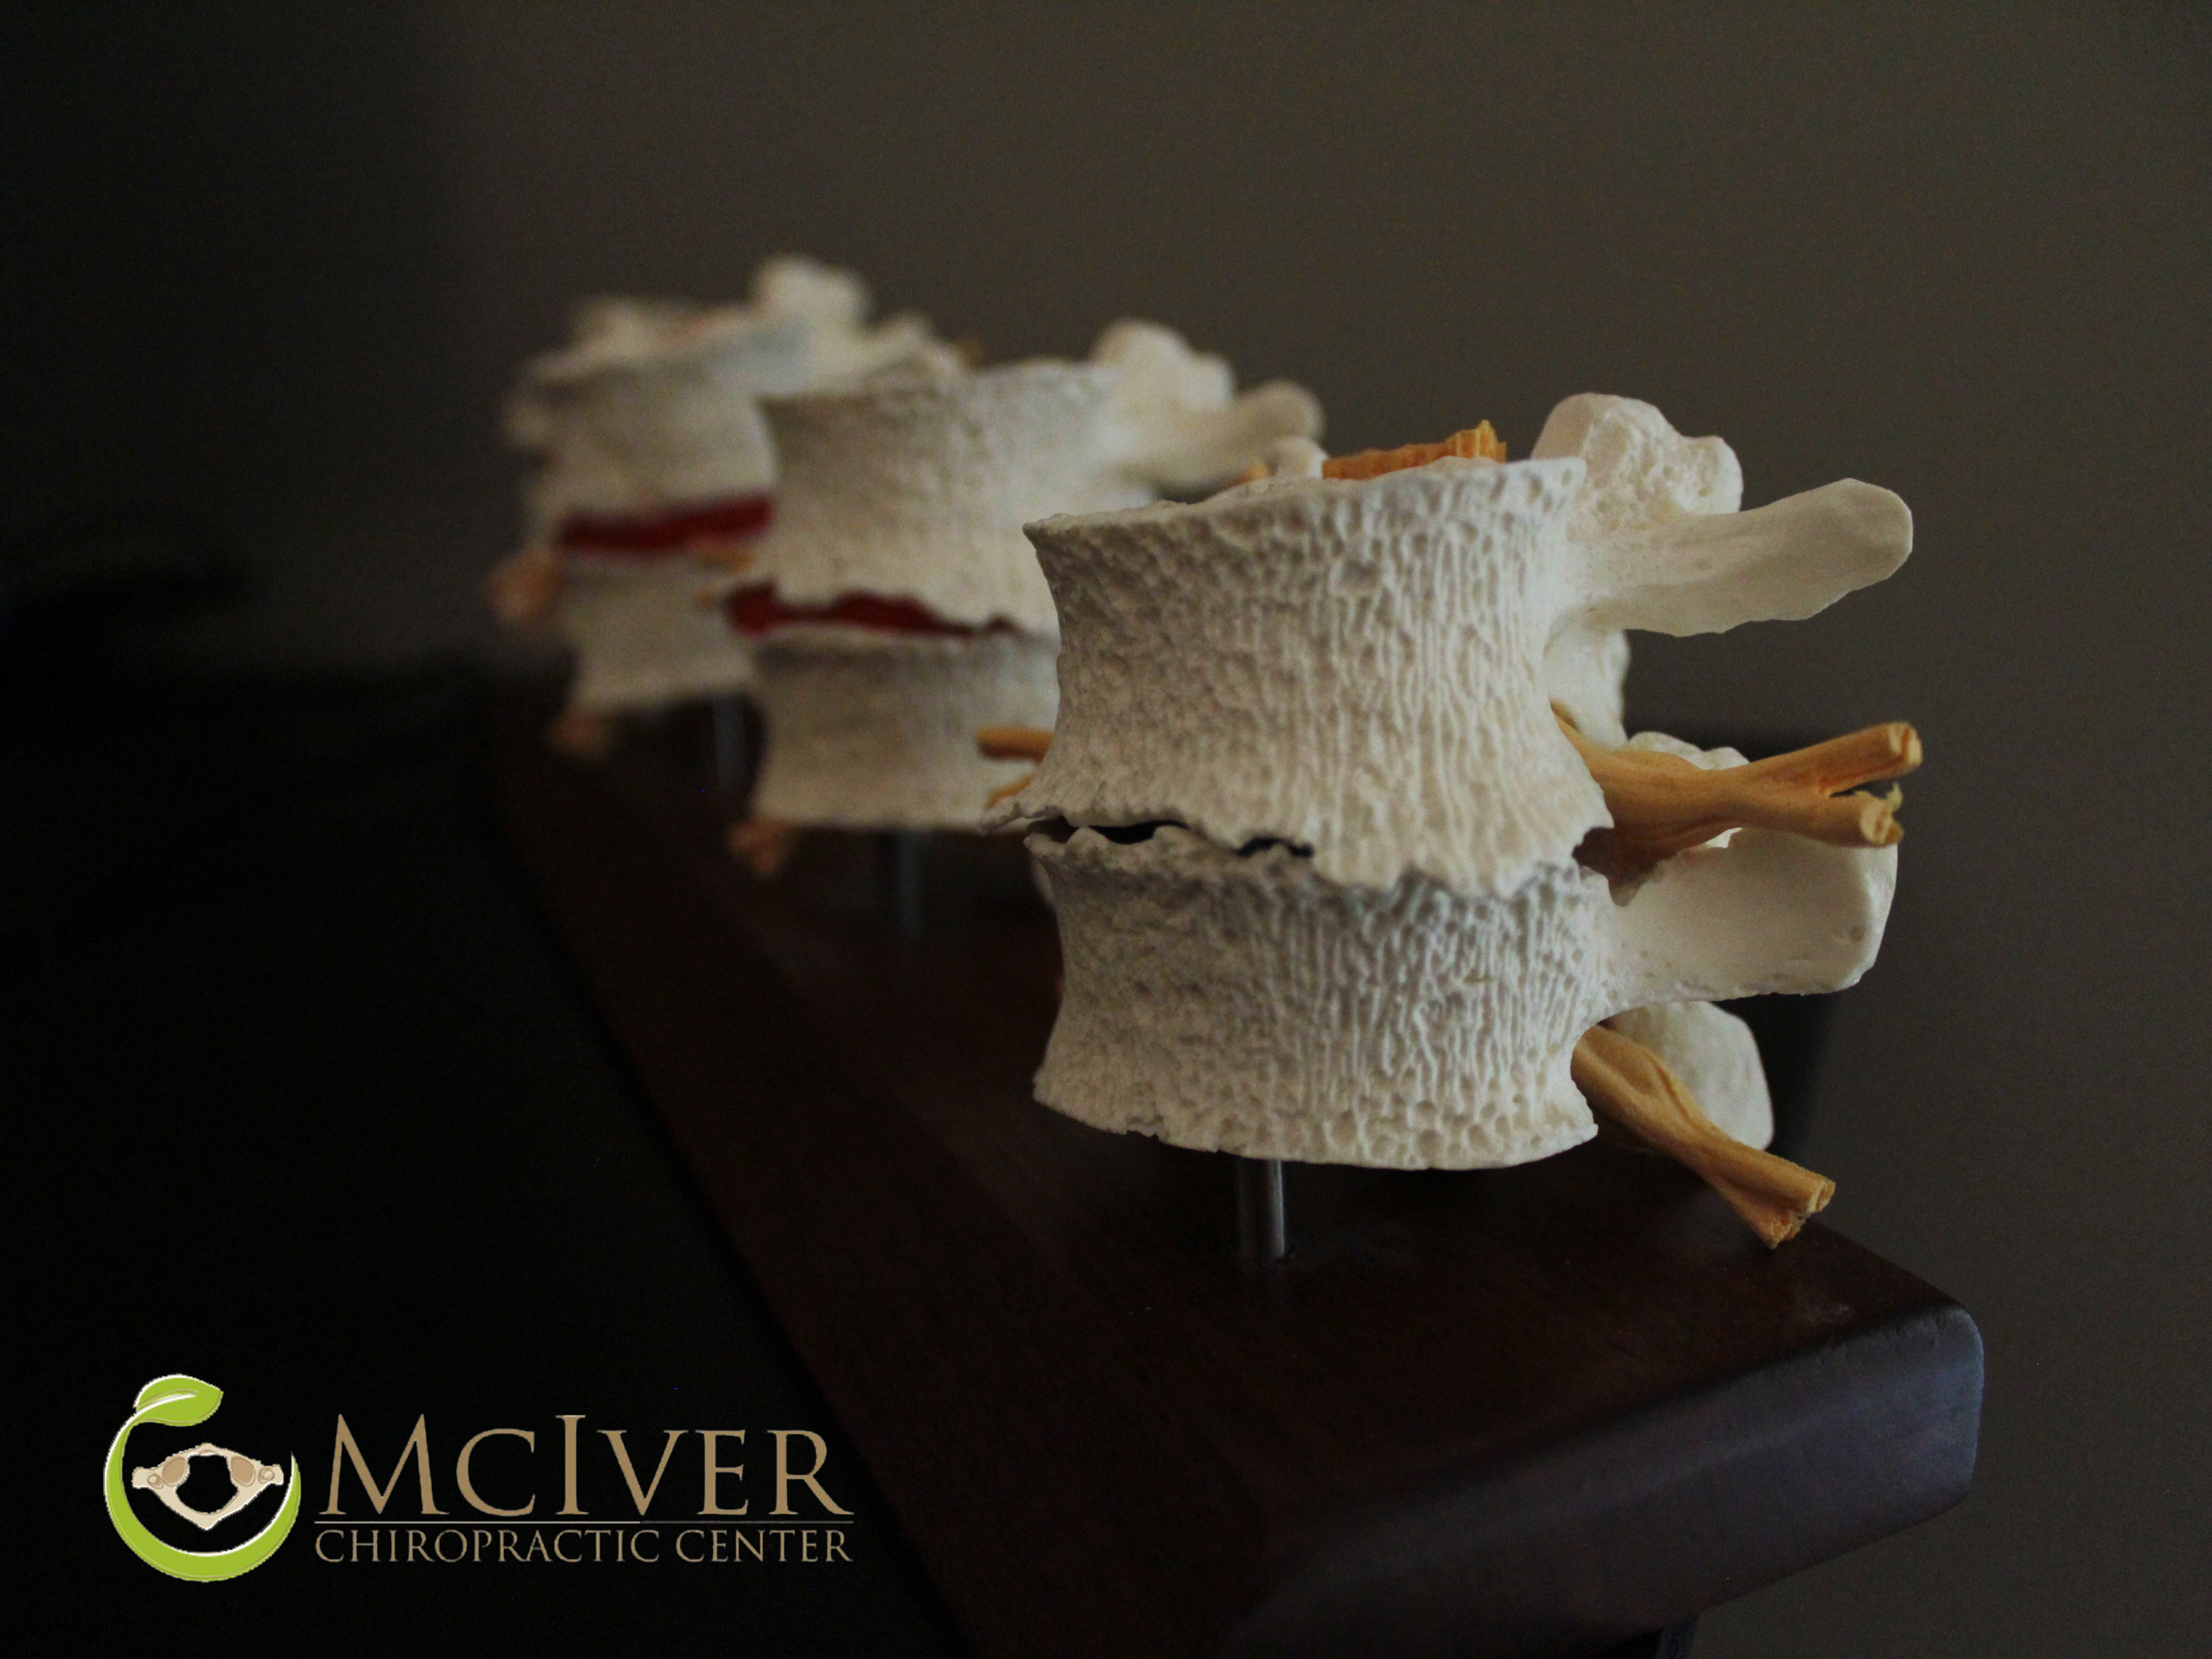 McIver Chiropractic Center image 7